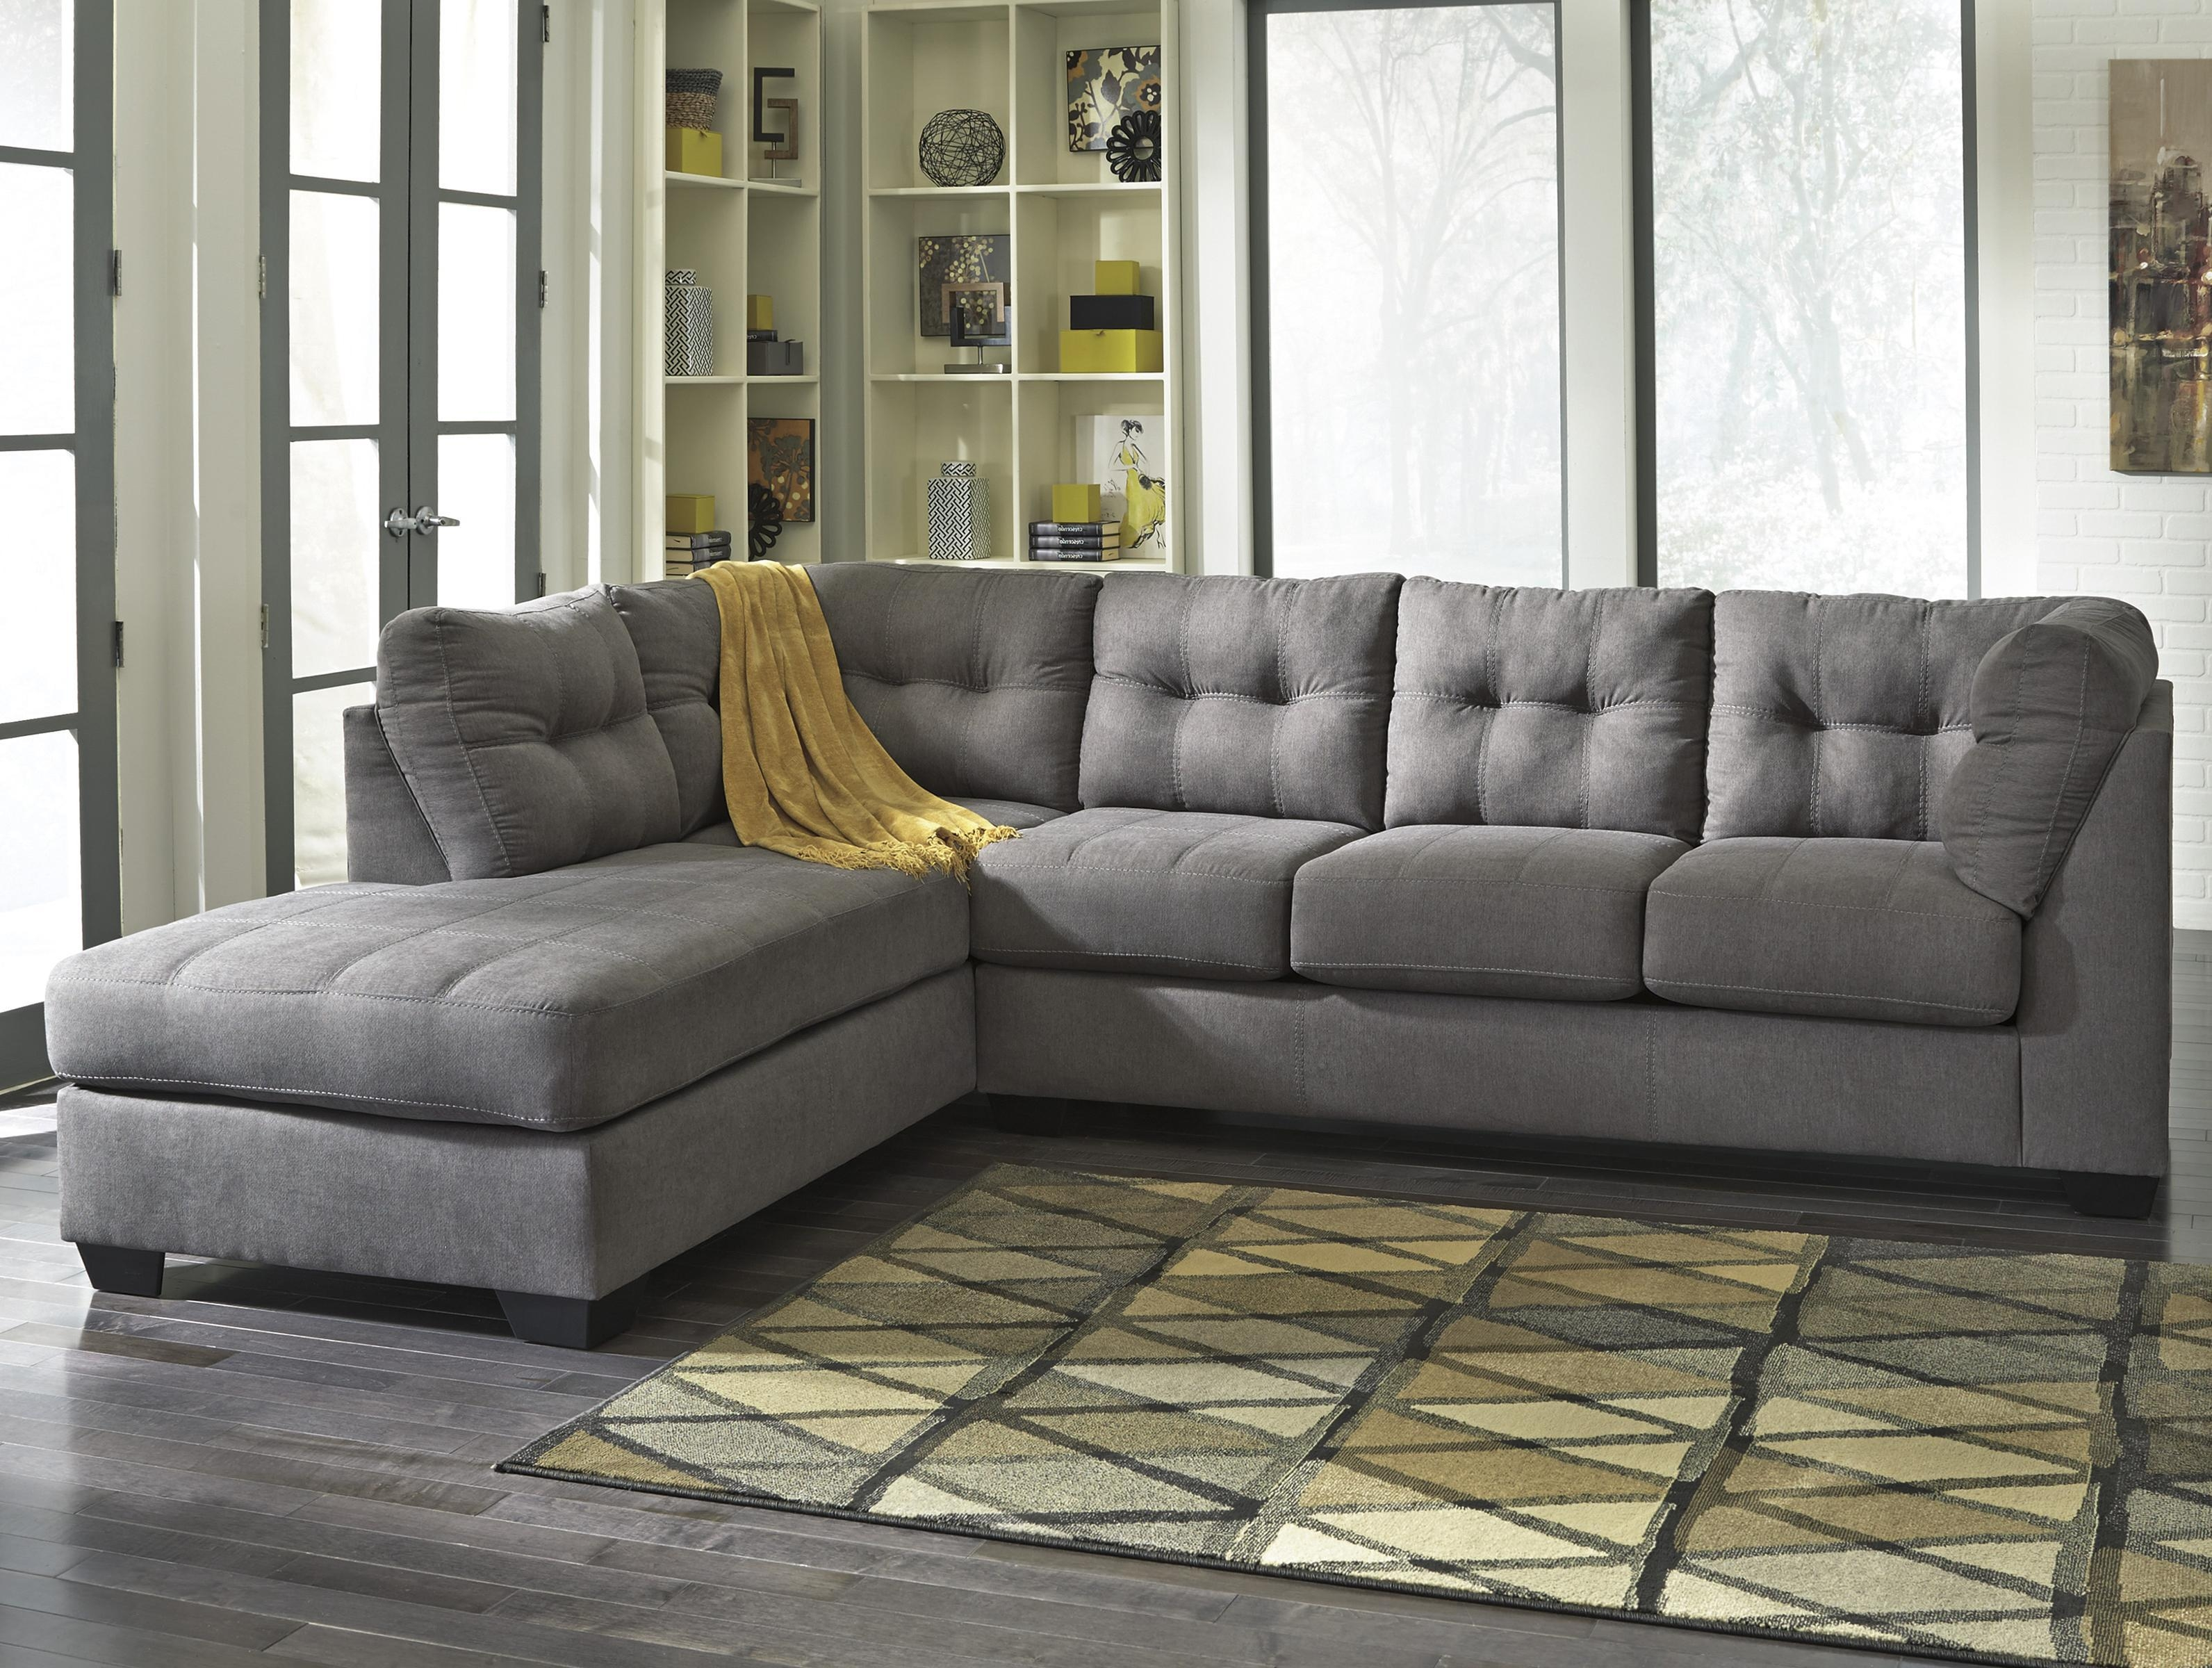 Benchcraft Maier – Charcoal 2 Piece Sectional W/ Sleeper Sofa Regarding 3 Piece Sectional Sleeper Sofa (View 7 of 15)